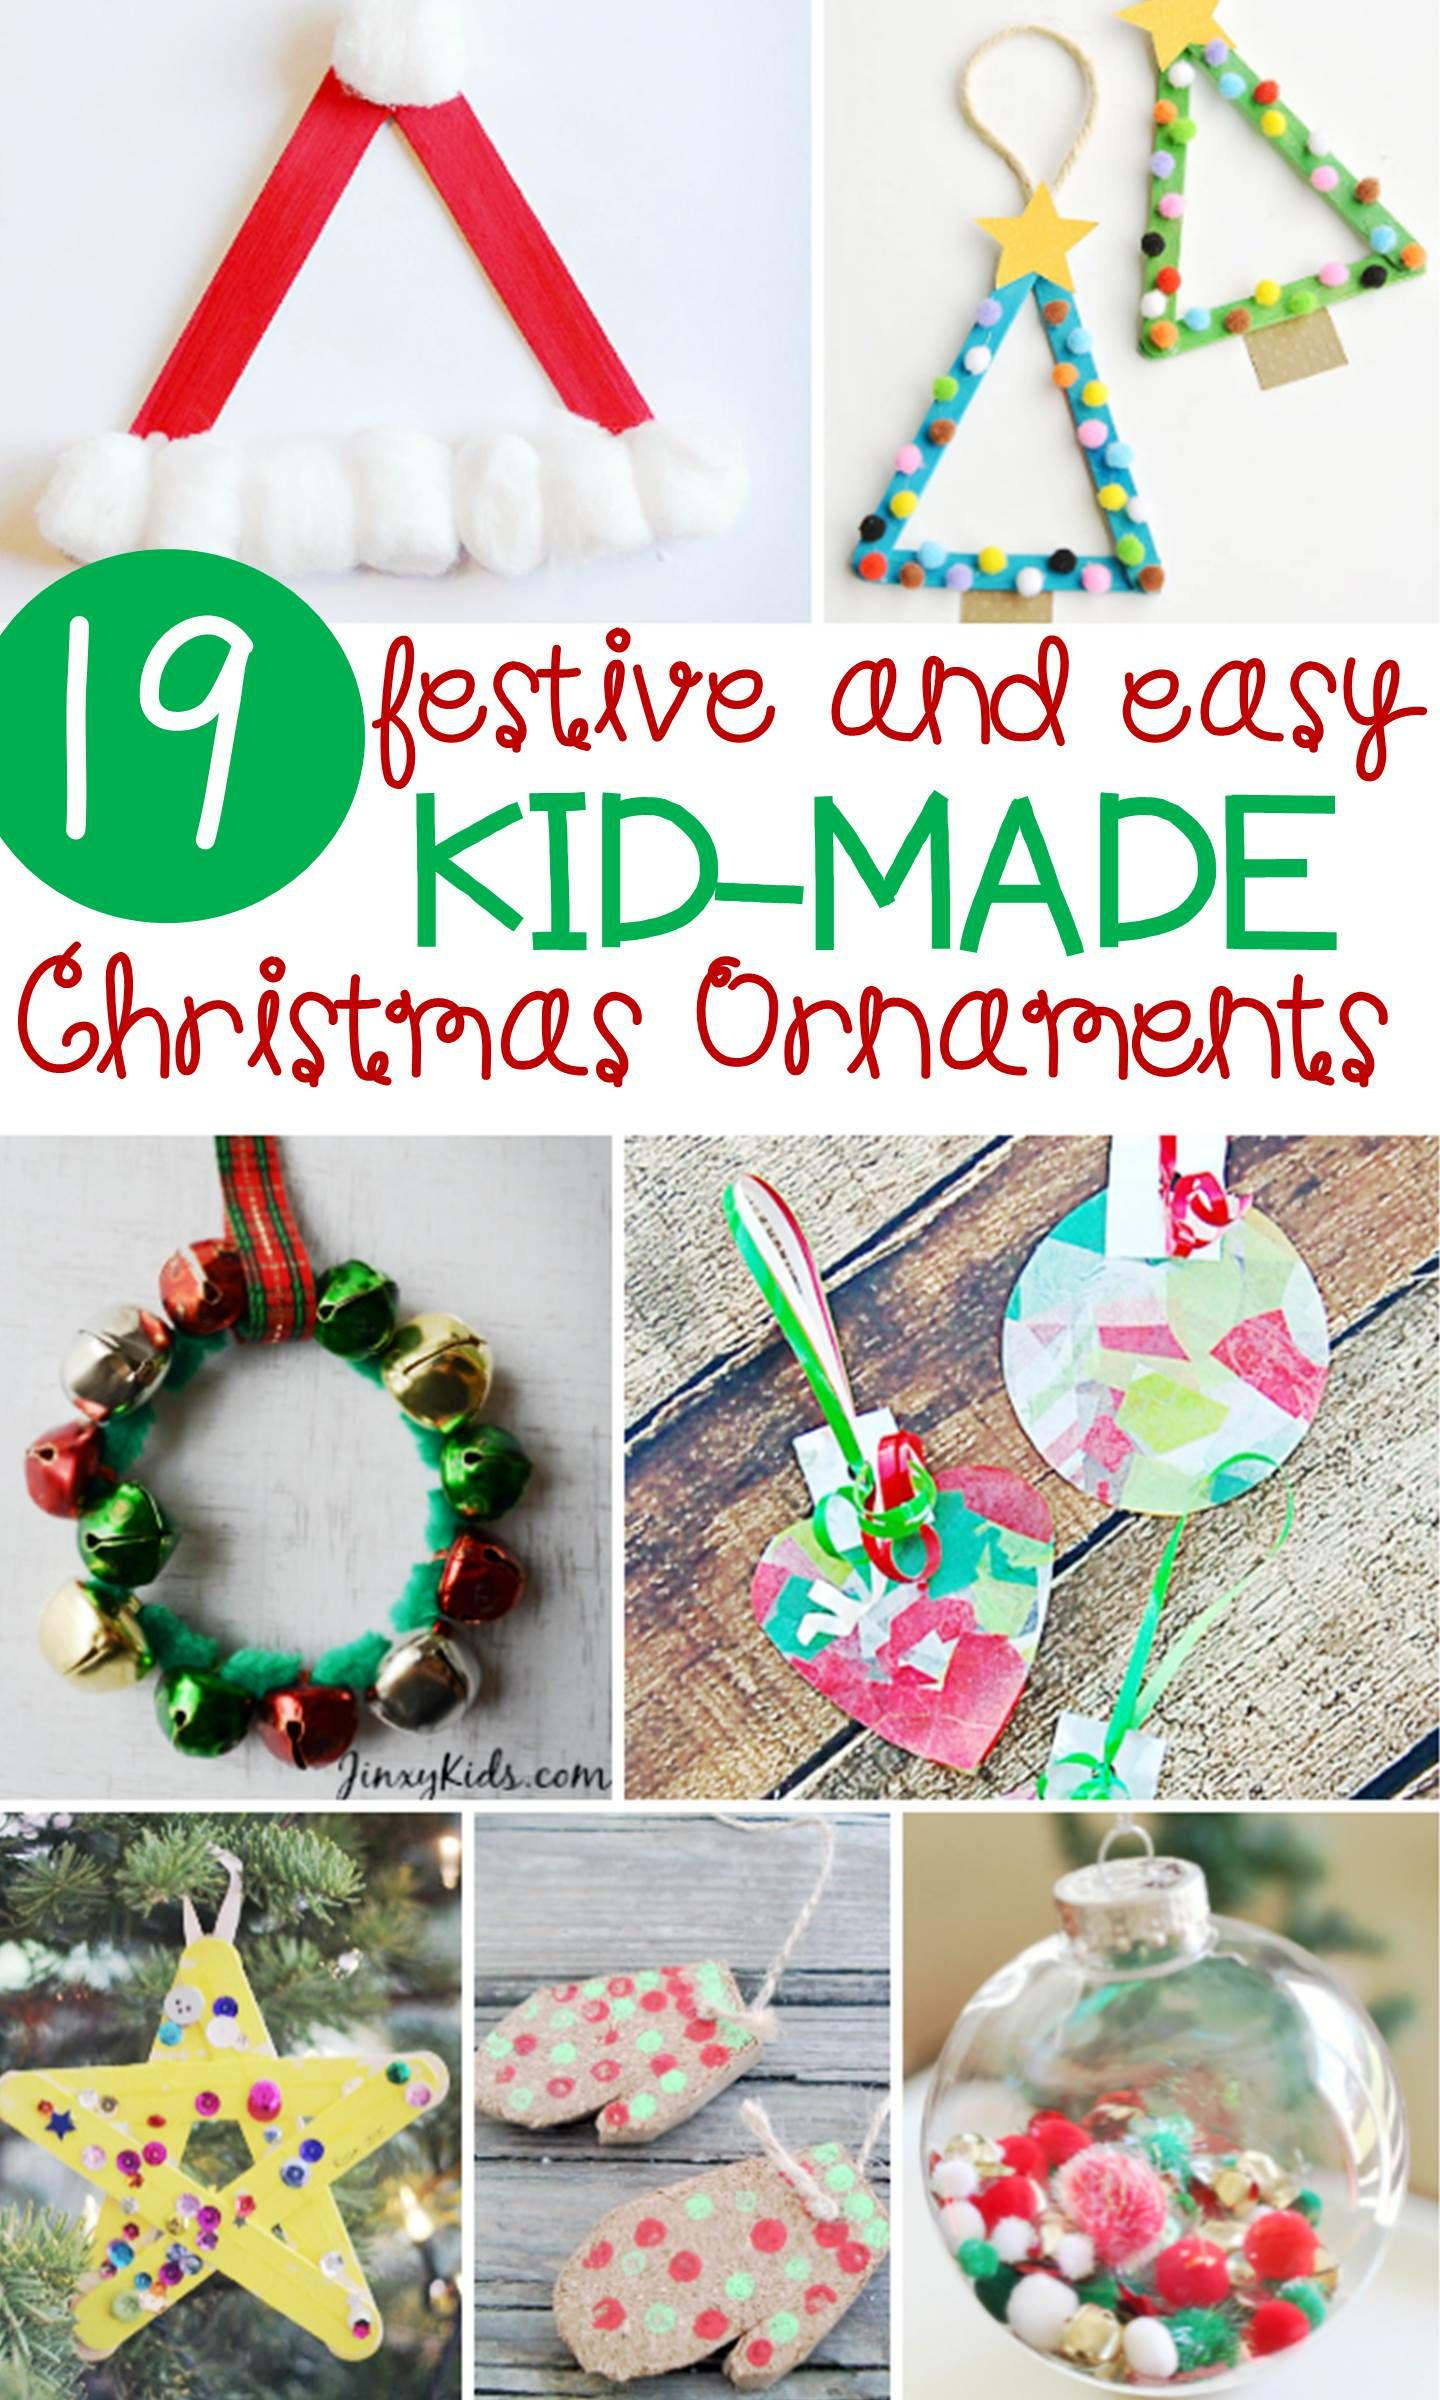 Festive And Simple Kids Christmas Ornaments Kids Christmas Ornaments Easy Kids Christmas Easy Christmas Ornaments